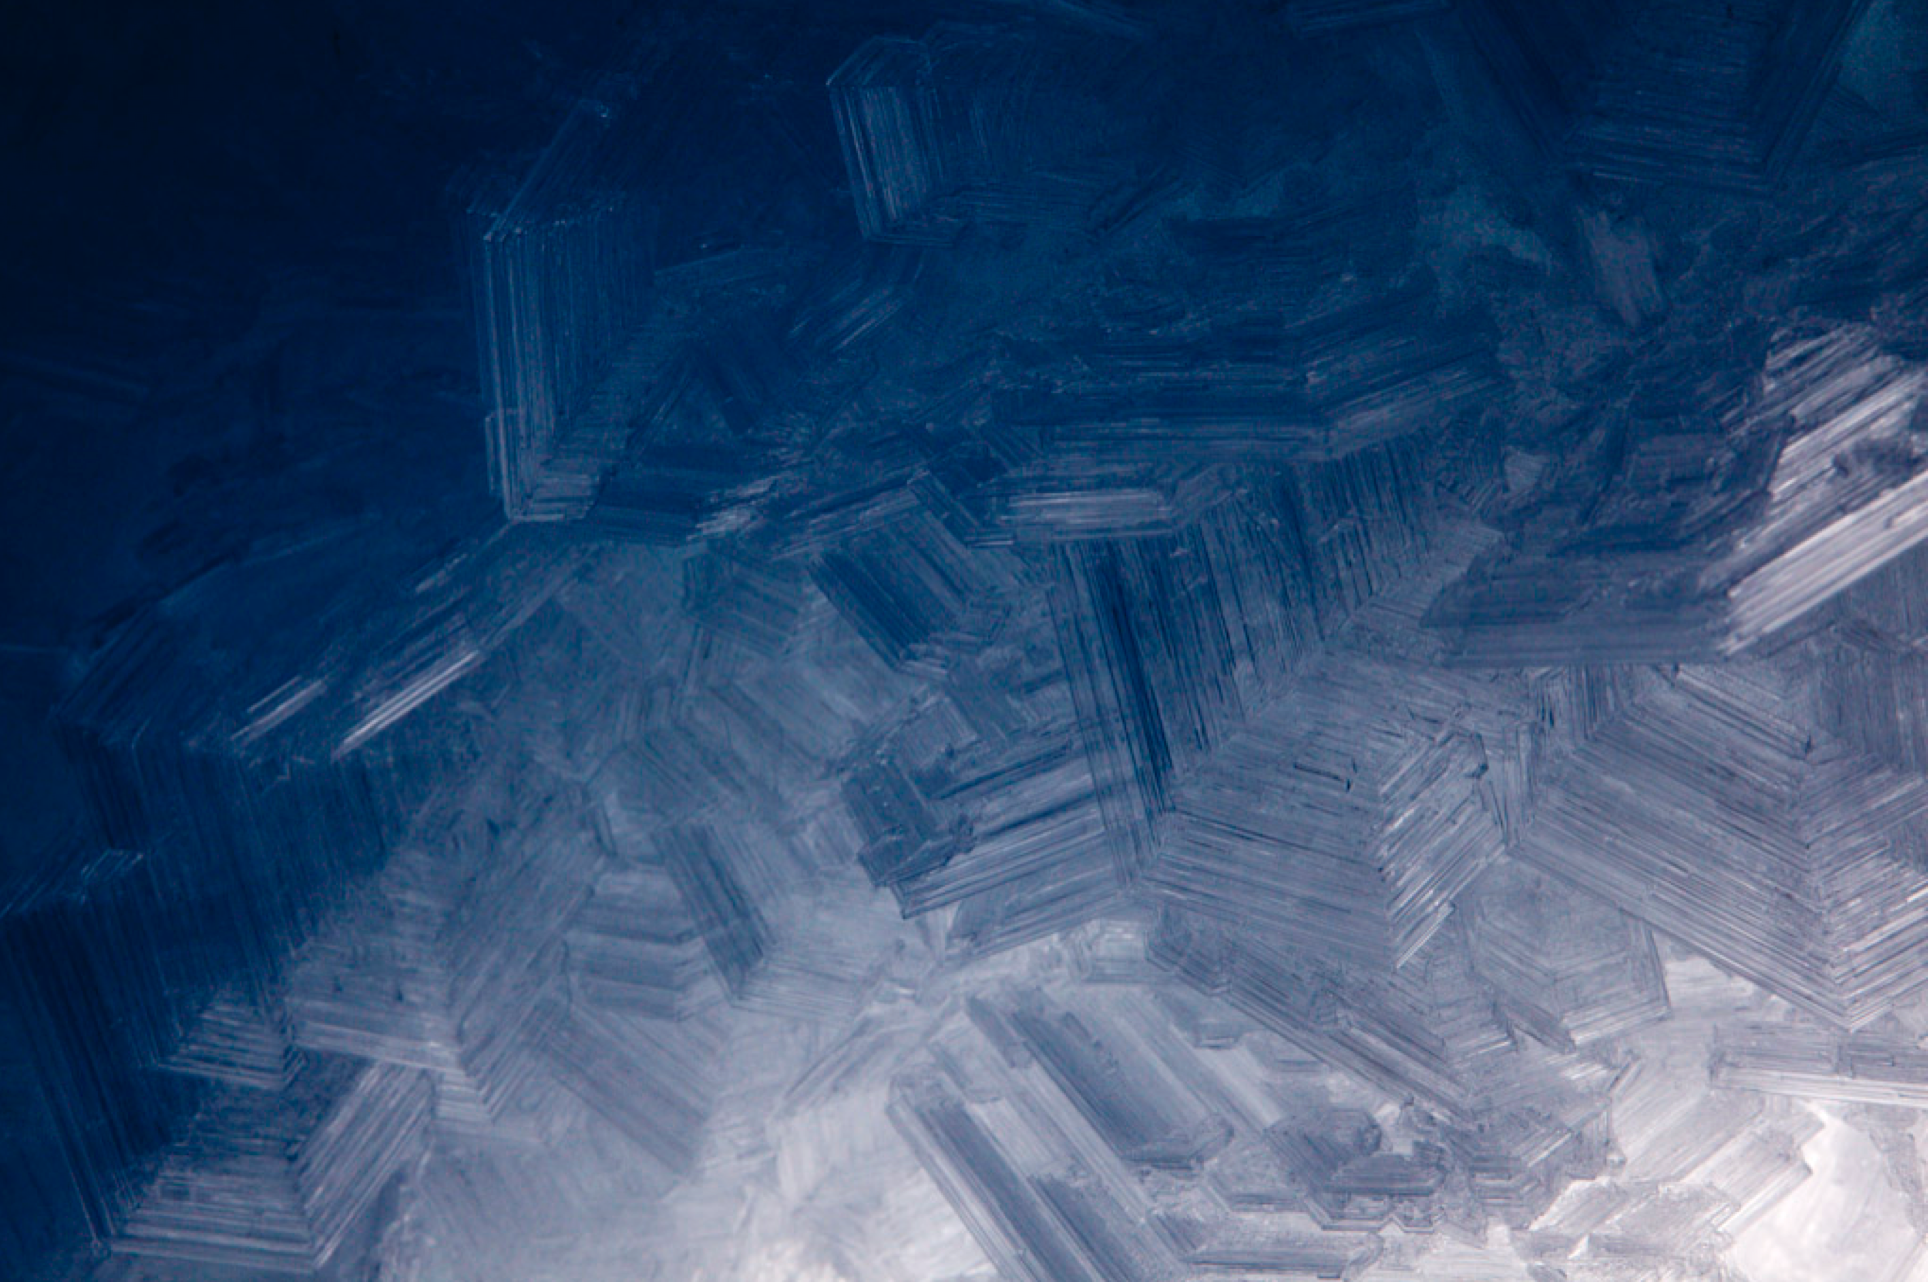 Enormous faceted snow crystals inside of a crevasse.